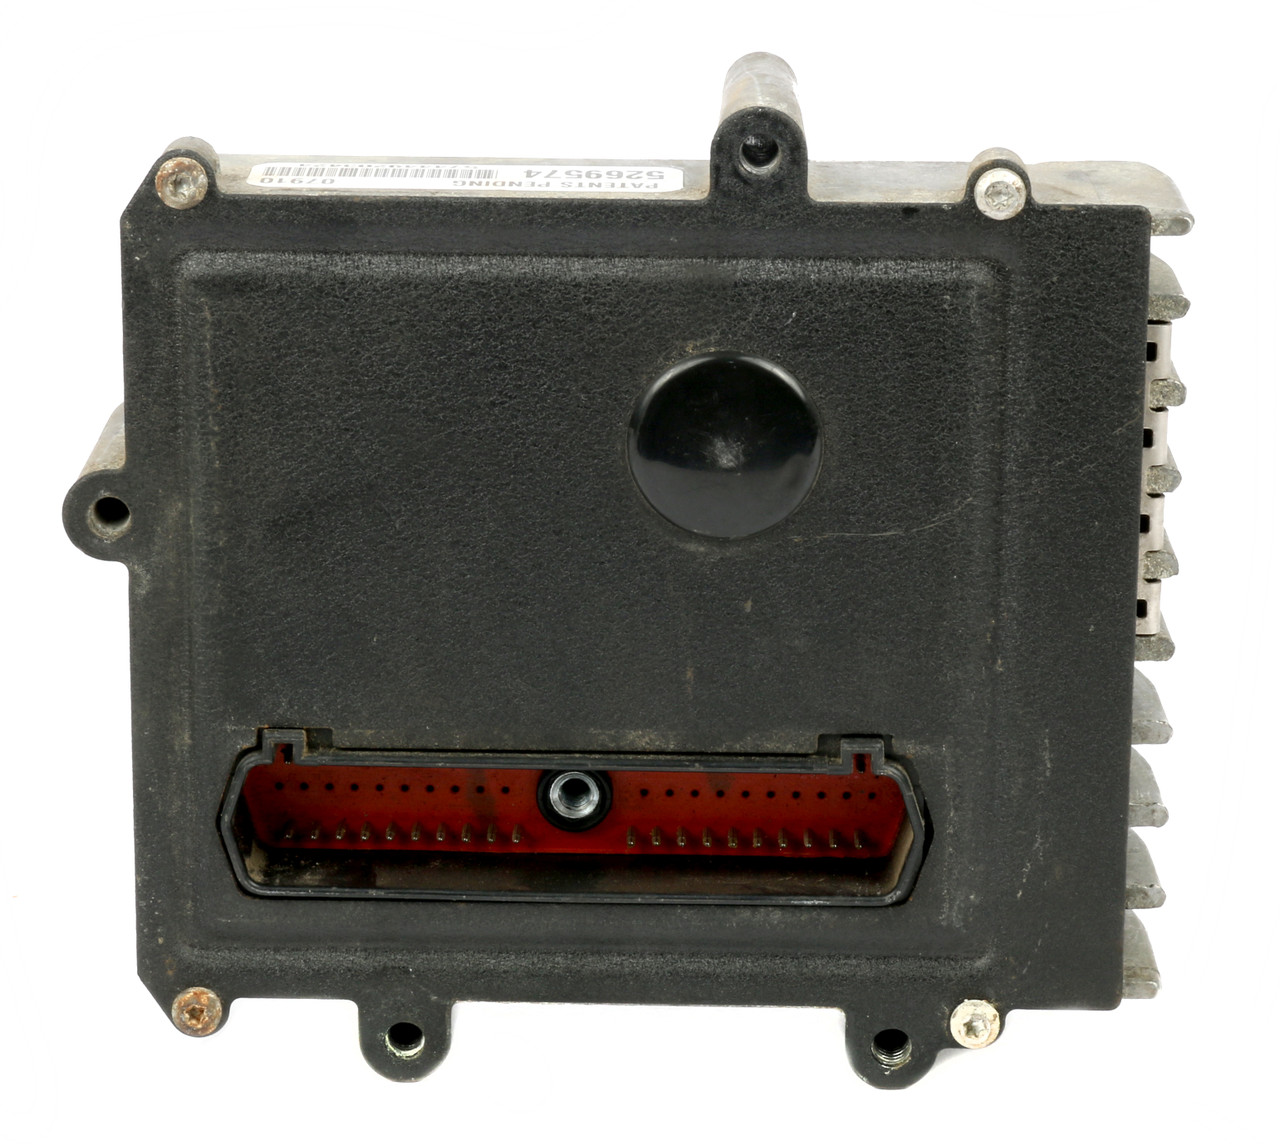 95 96 Dodge Mitsubishi Chrysler Oem Transmission Chassis Control Module 5269574 Http Store N1387mybigcommercecom Content 591